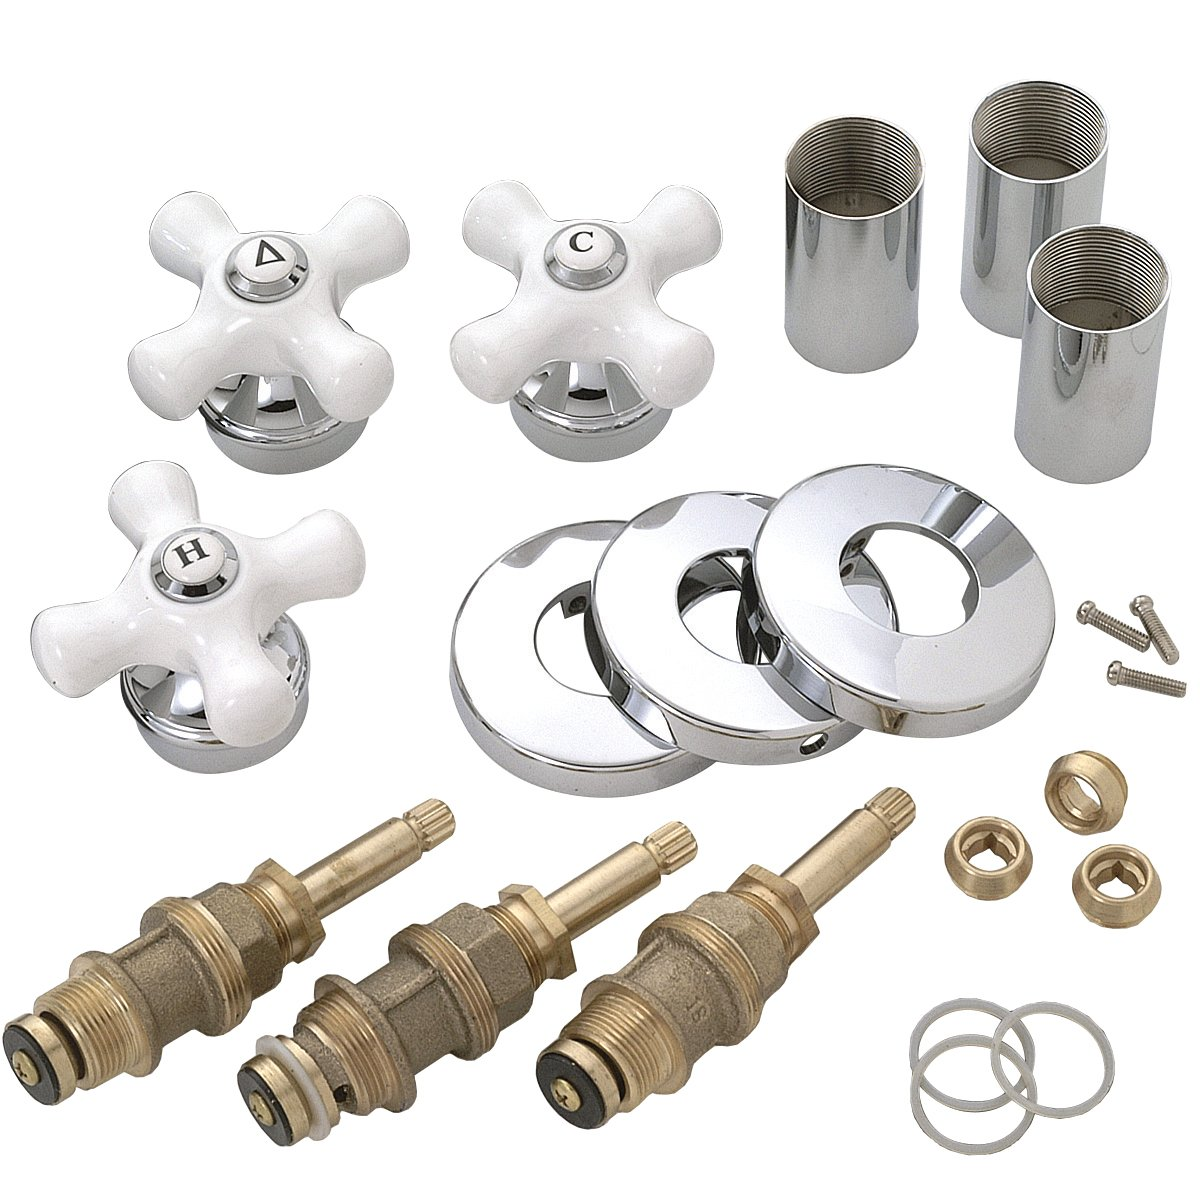 BrassCraft SK0268 Tub and Shower Rebuild Kit for Price Pfister Faucets with Cross Handles, White and Chrome by BrassCraft Mfg (Image #1)